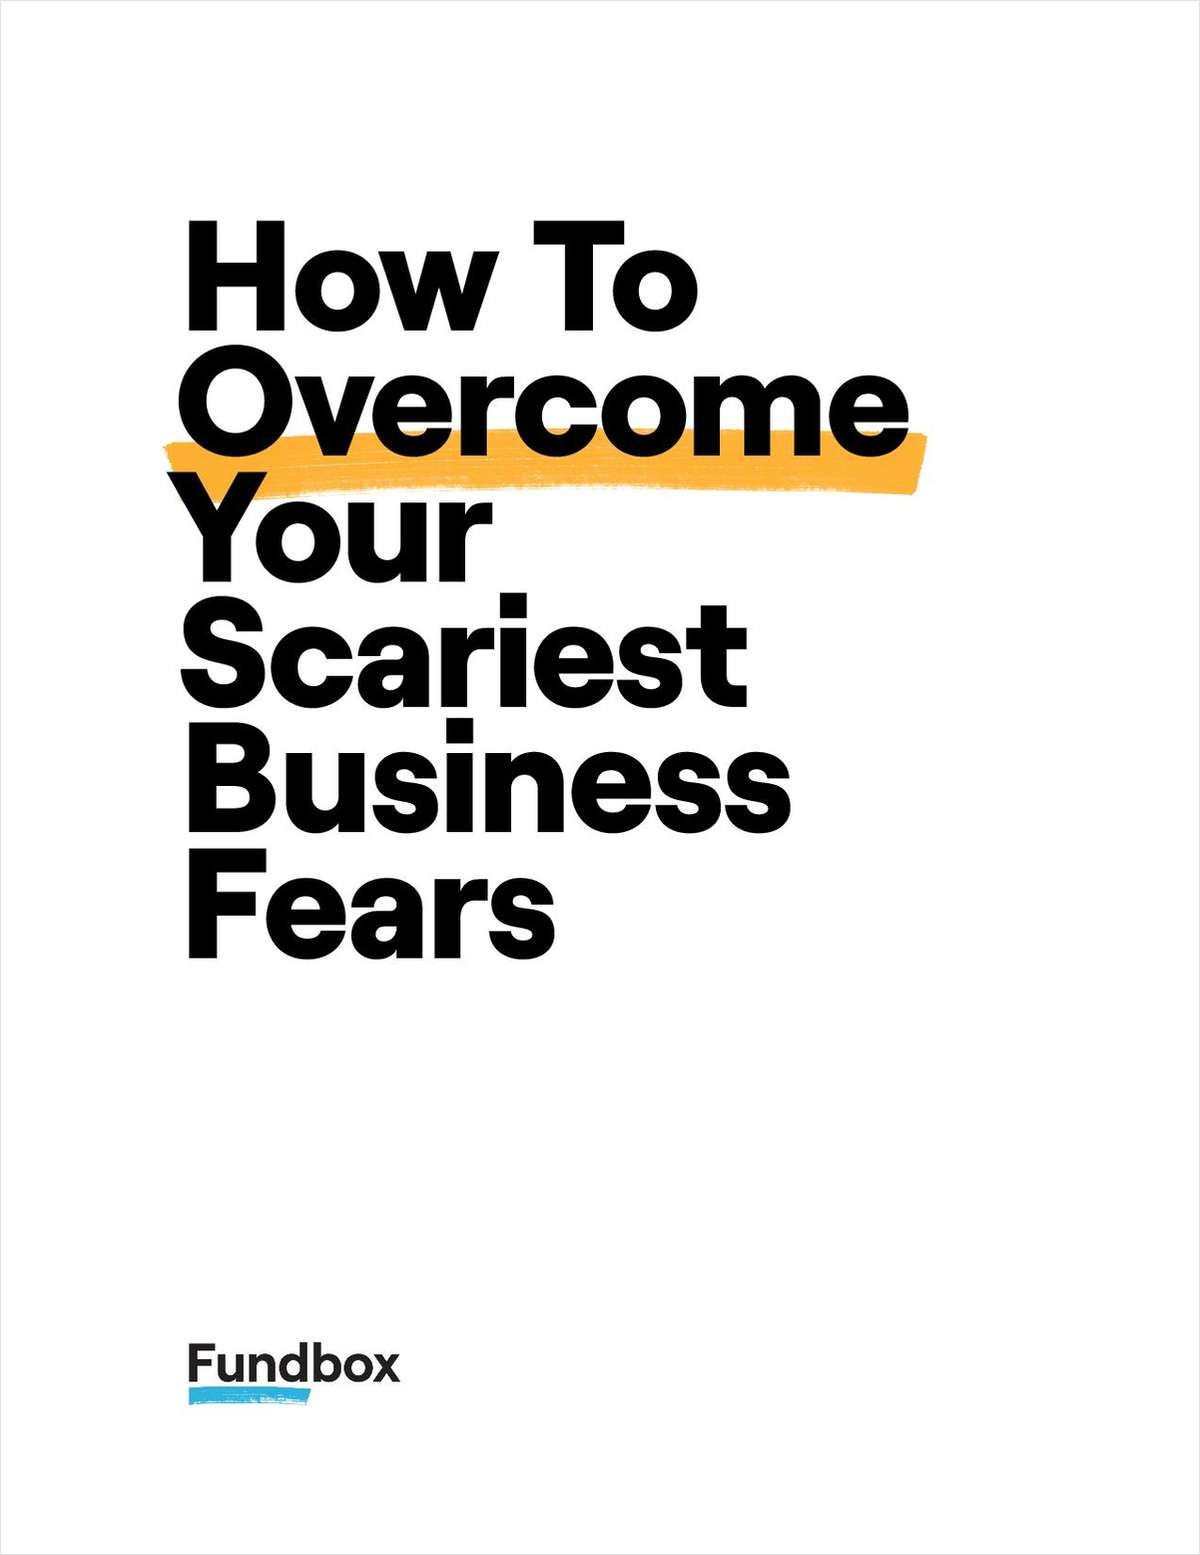 How To Overcome Your Scariest Business Fears